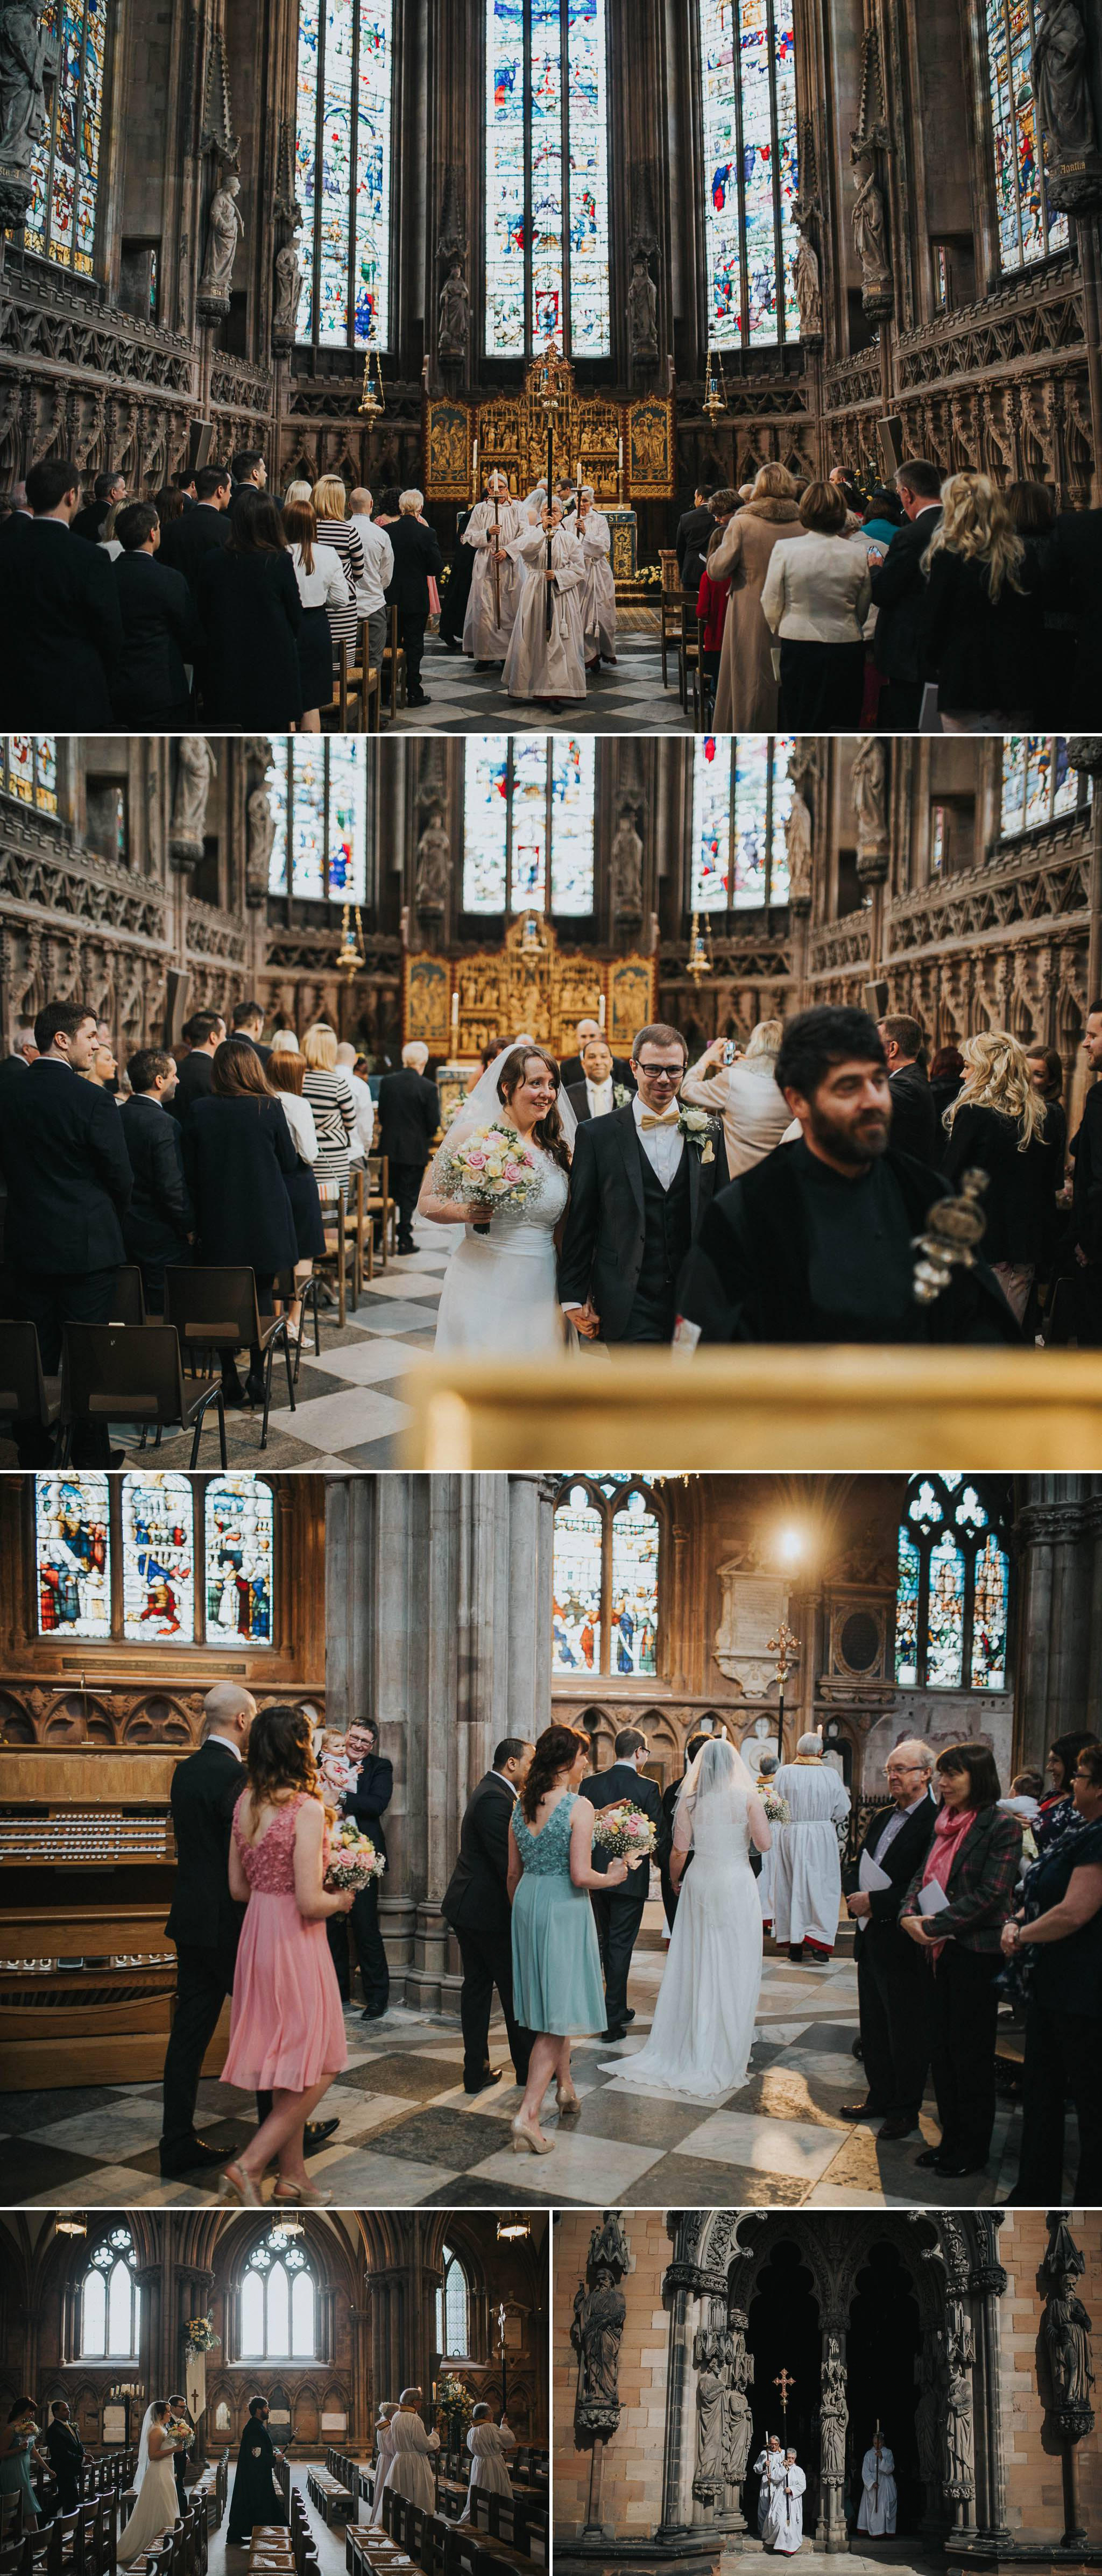 lichfield-cathedral-wedding-photography 11.jpg